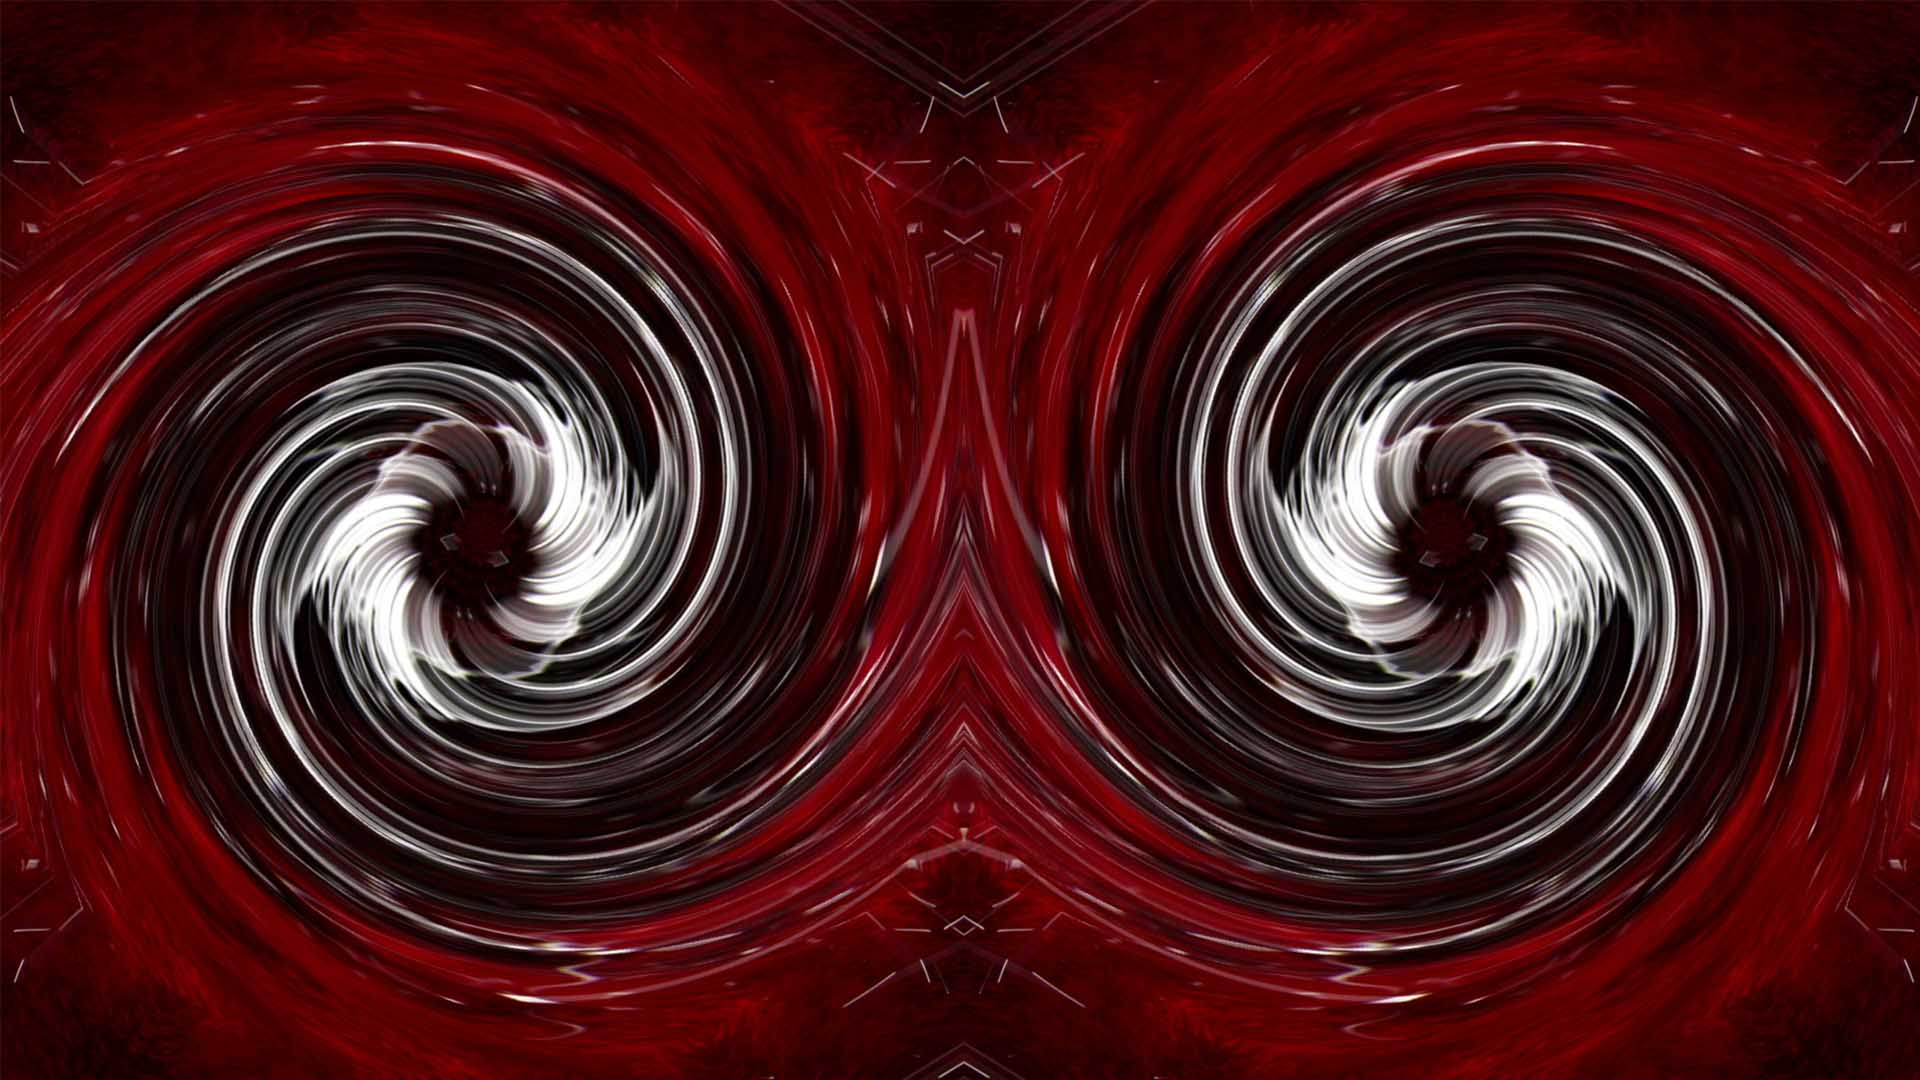 Abstract Vj Loop HD